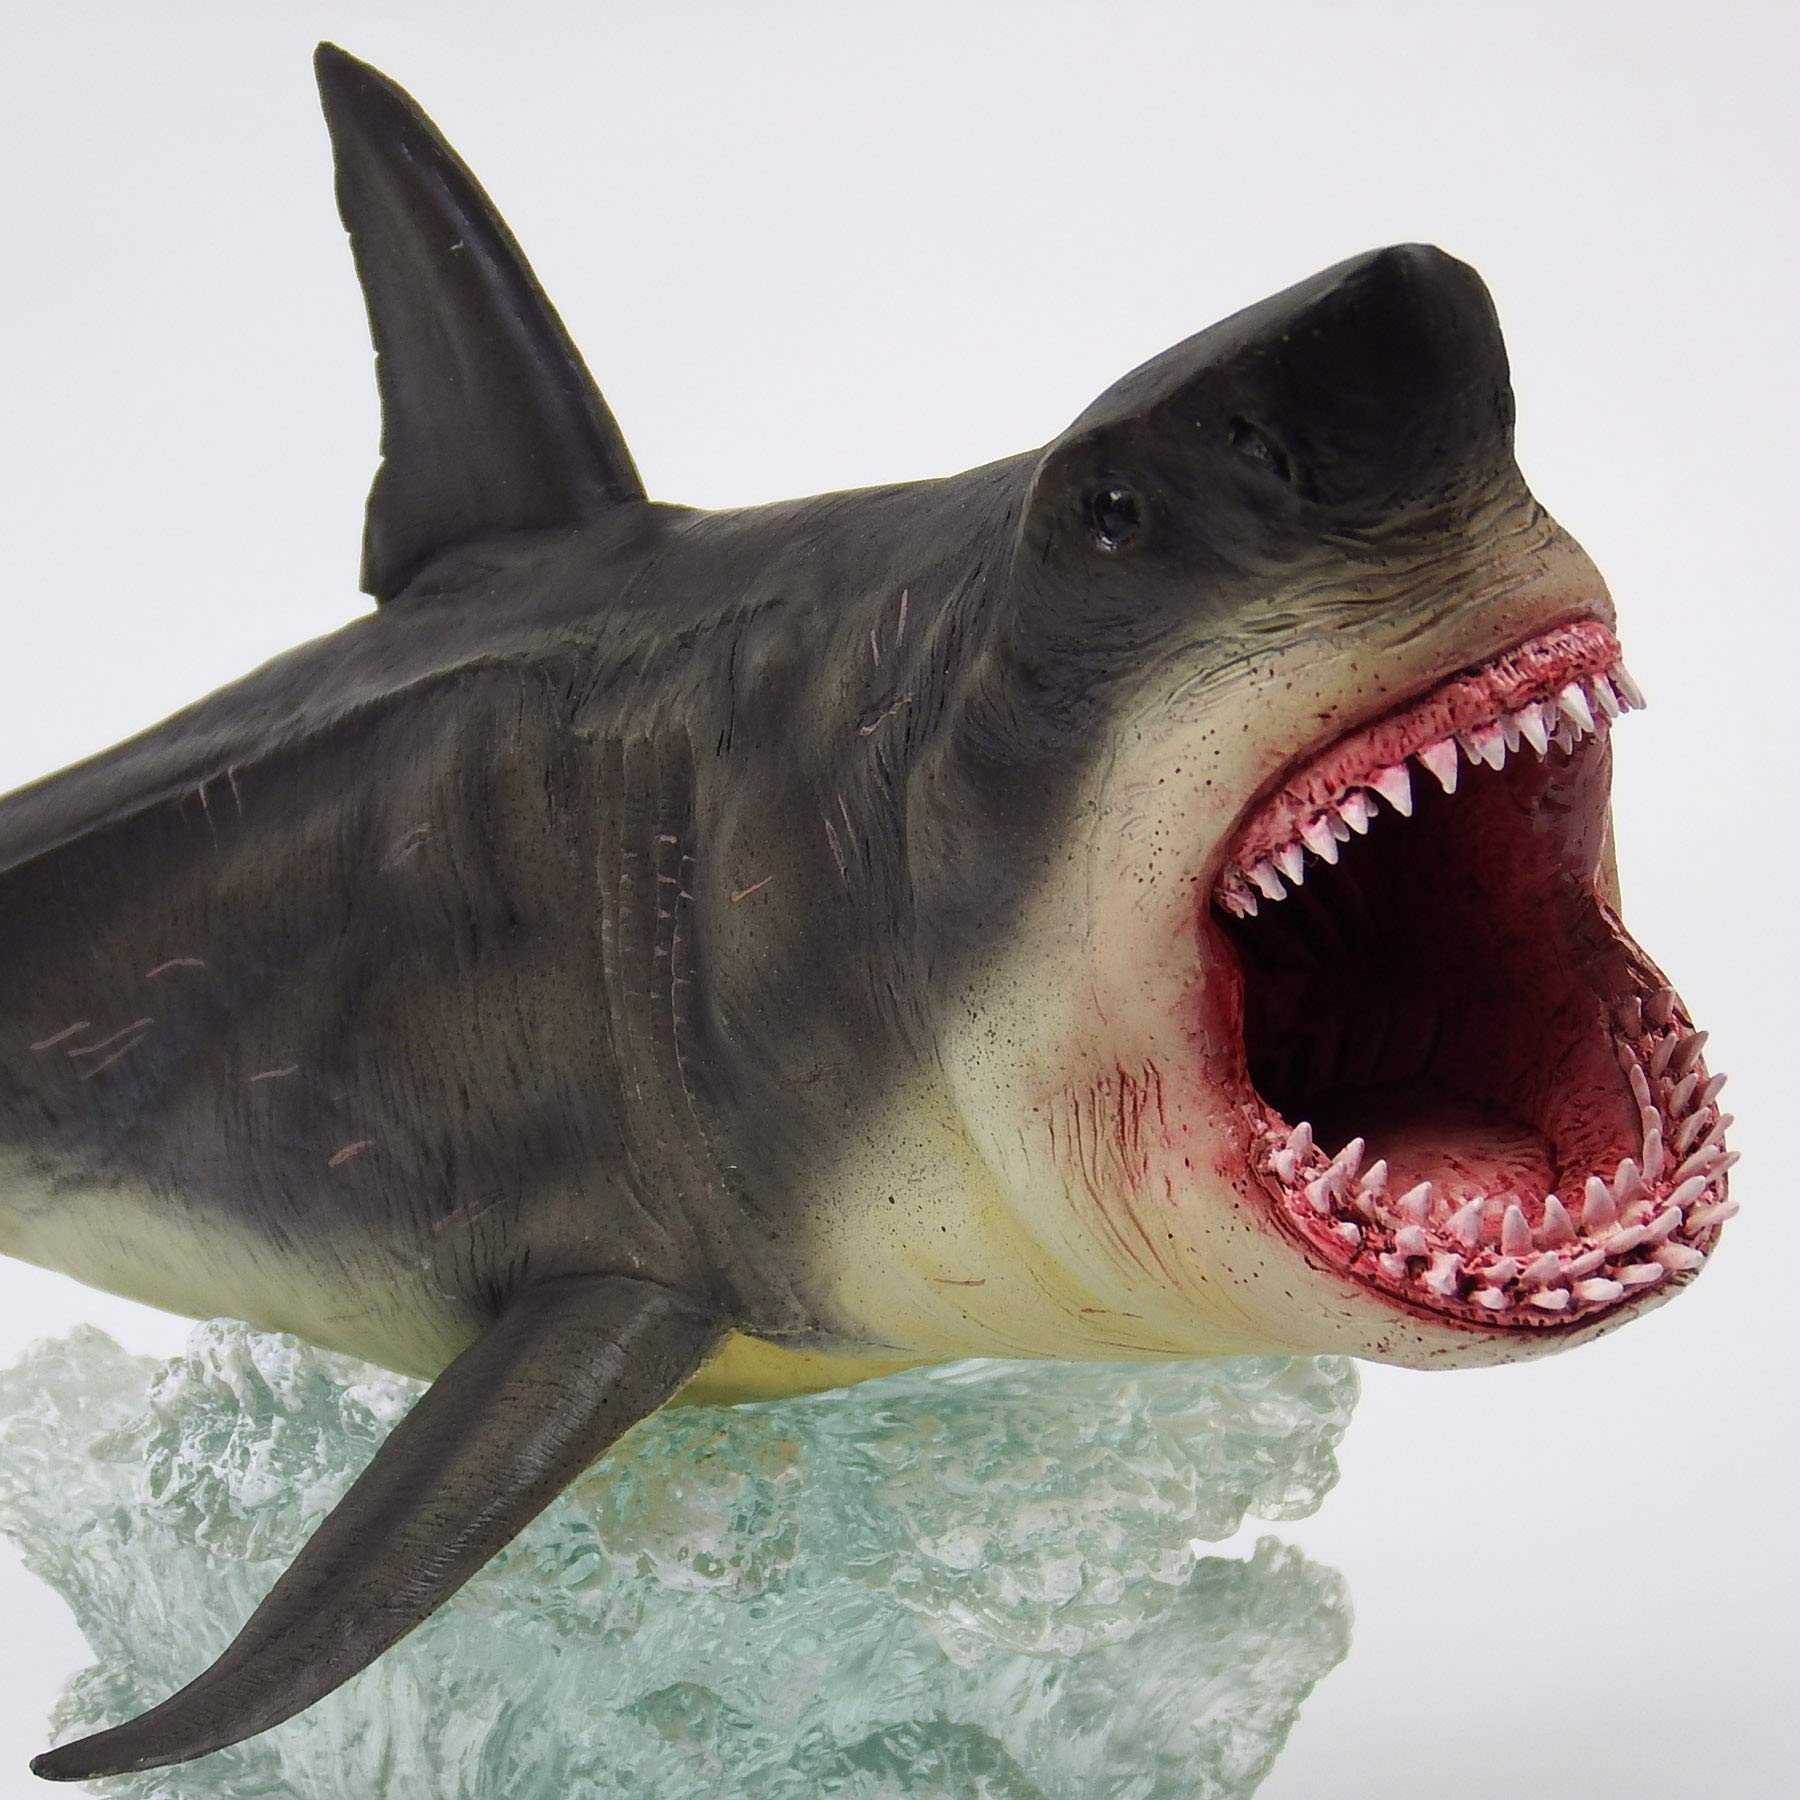 Megalodon Toy Shark Statue Figurine The MEG Paleontology Collectibles Oceanic Nautical Display by GemShark Collectiobles (Image #7)